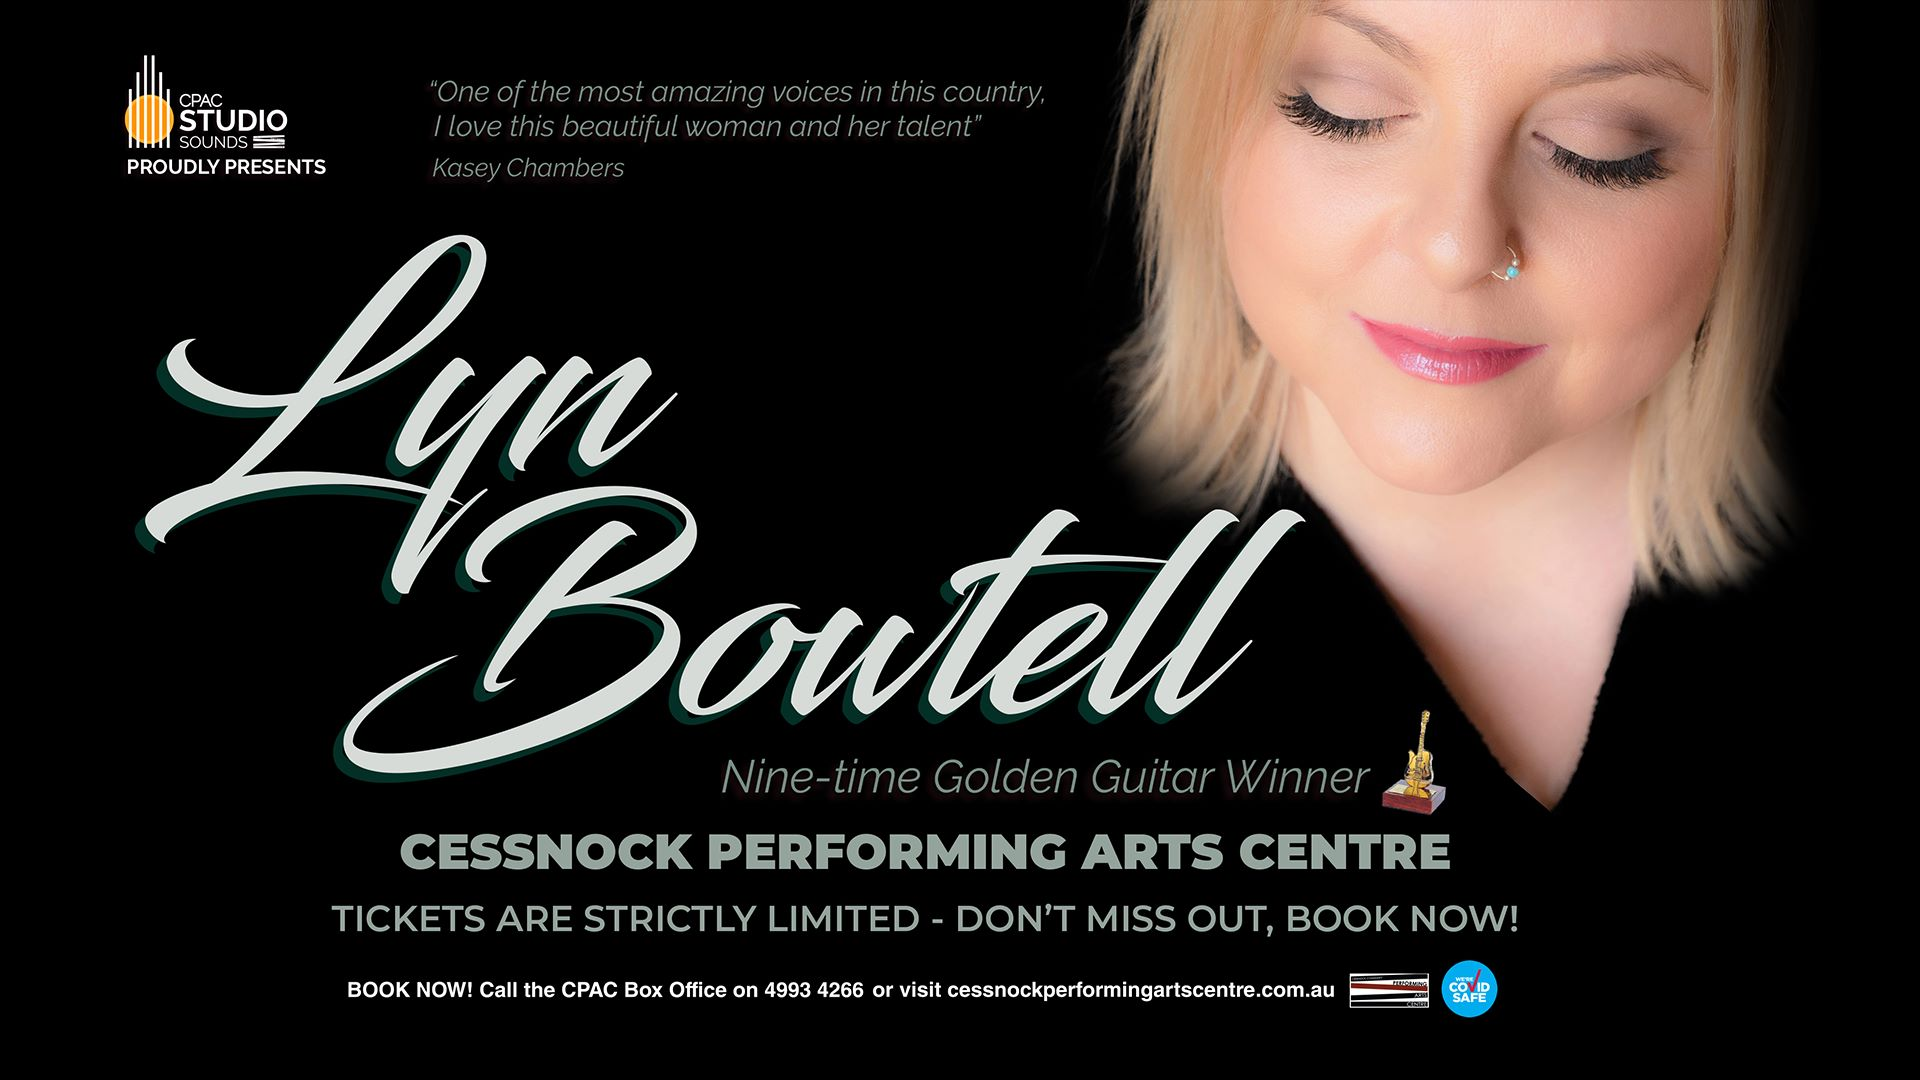 CPAC STUDIO SOUNDS Presents LYN BOWTELL